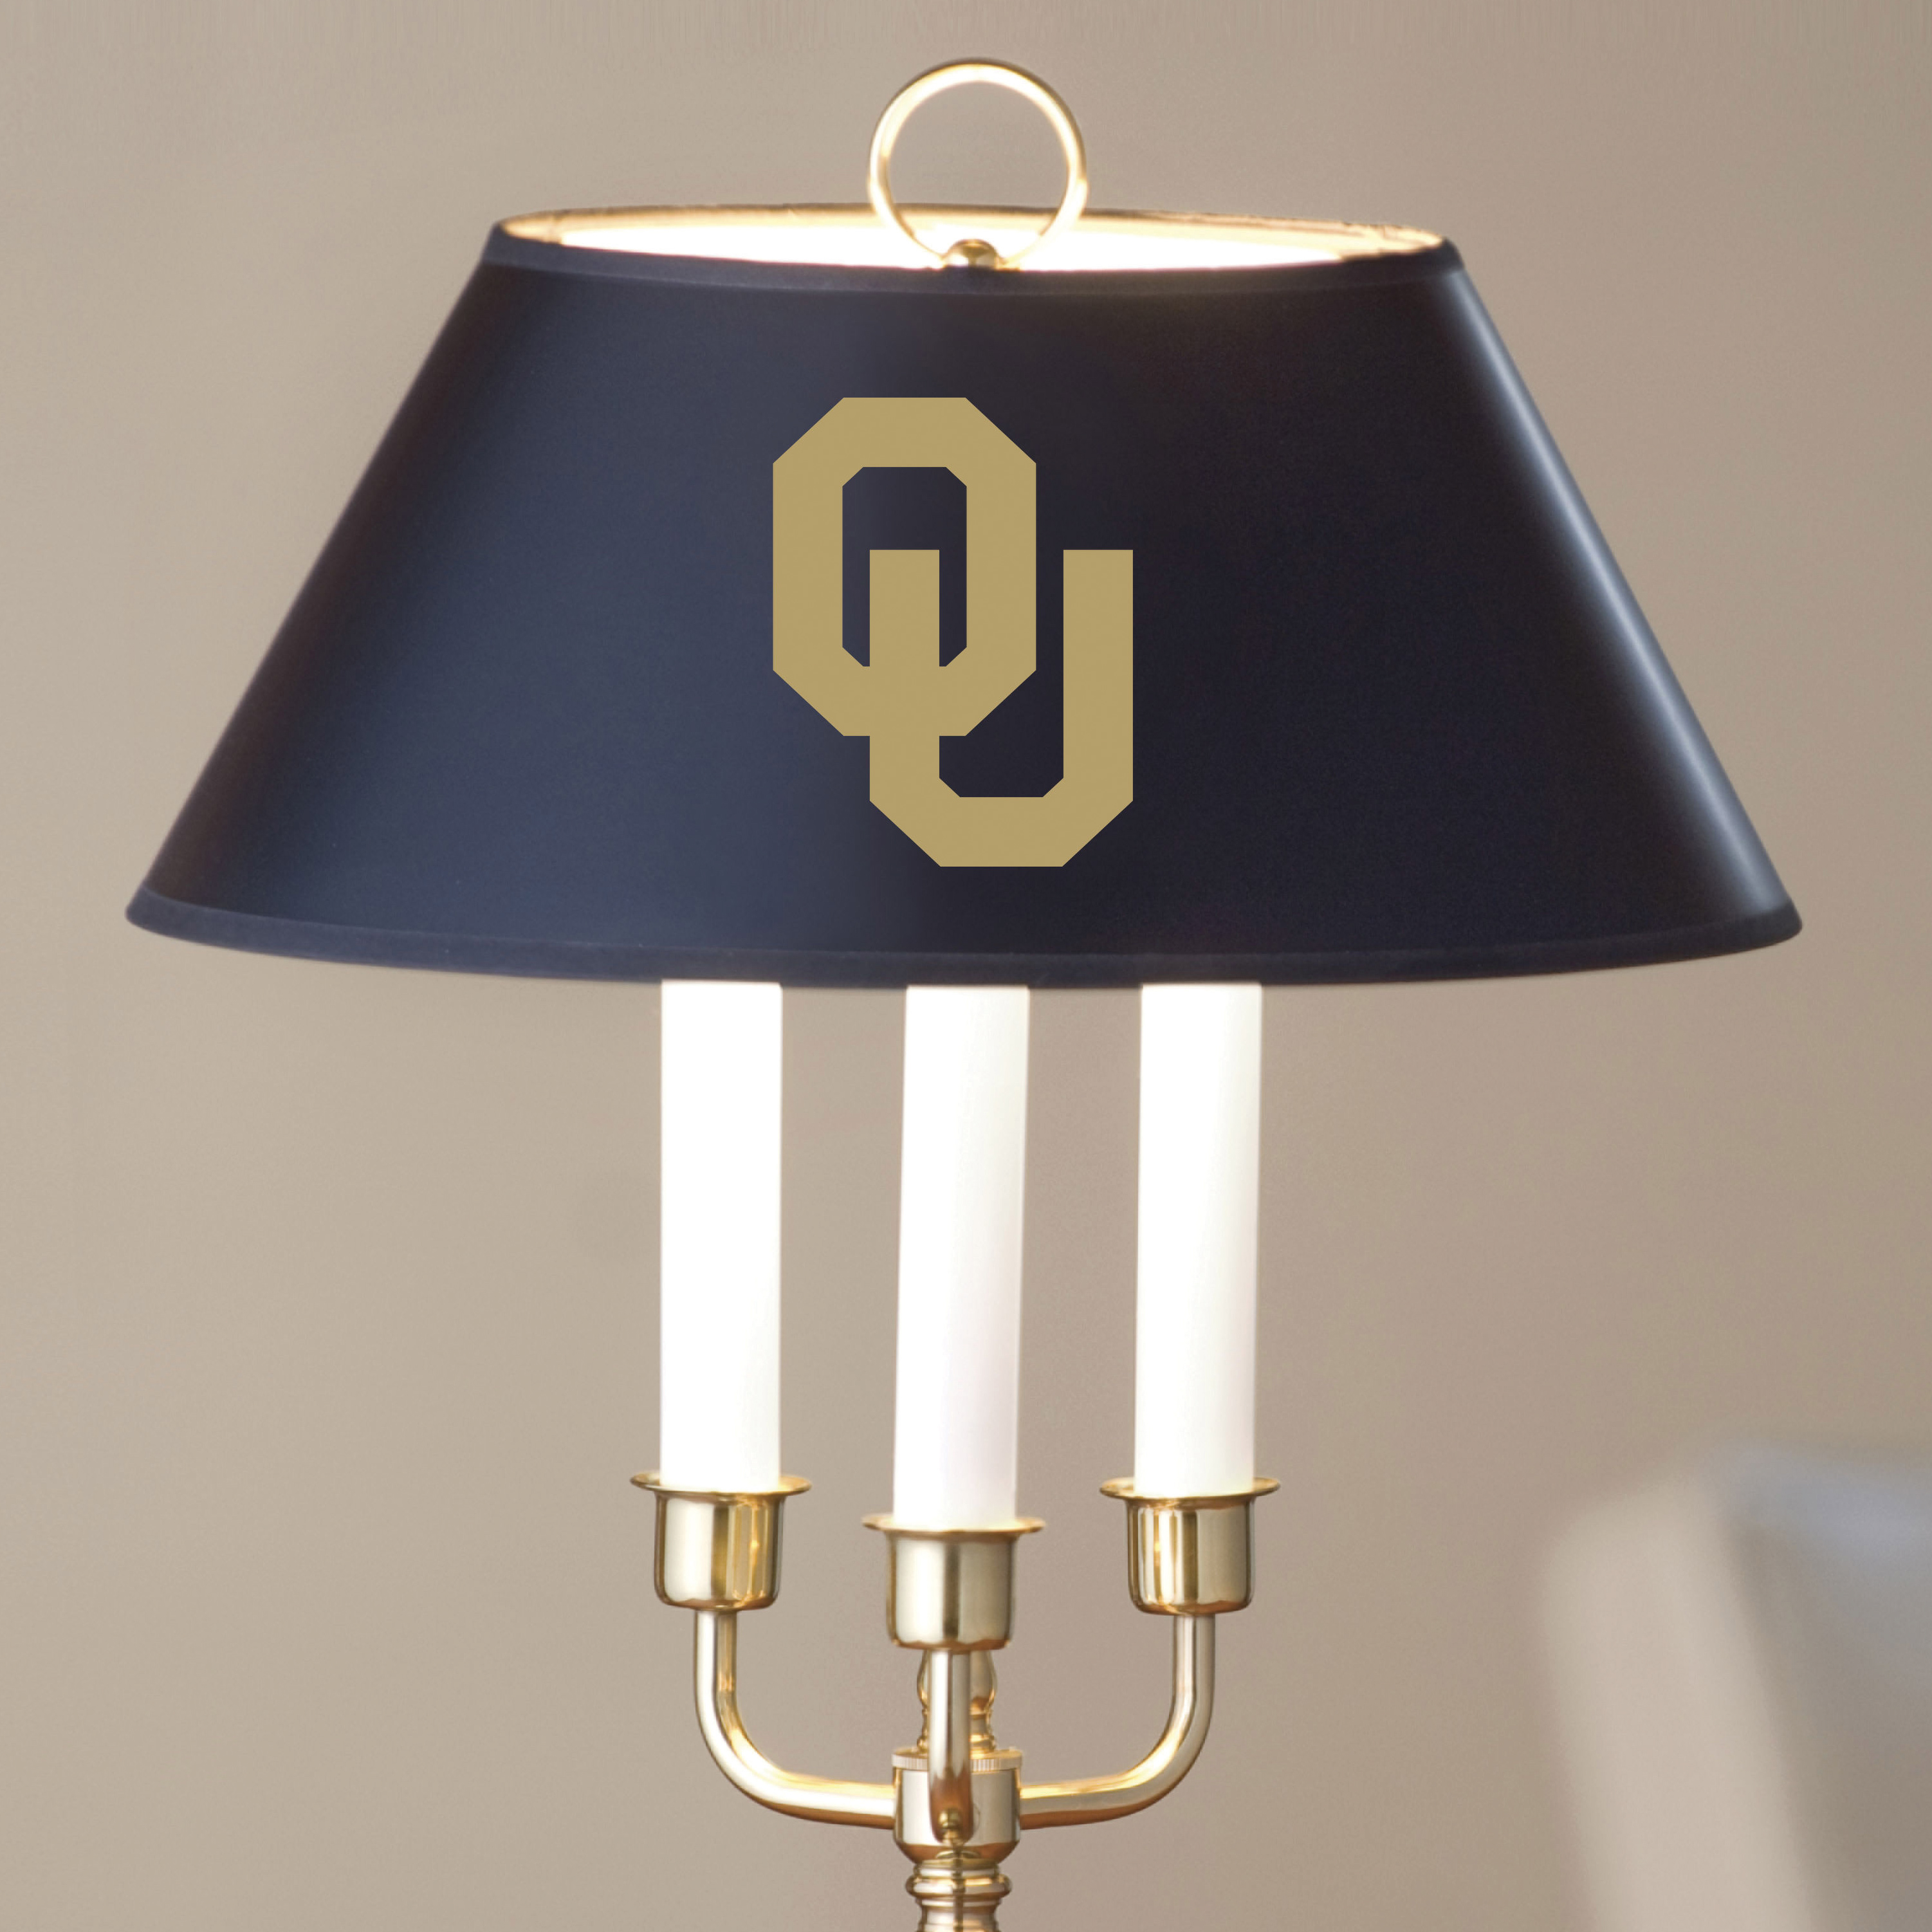 University of Oklahoma Lamp in Brass & Marble - Image 2